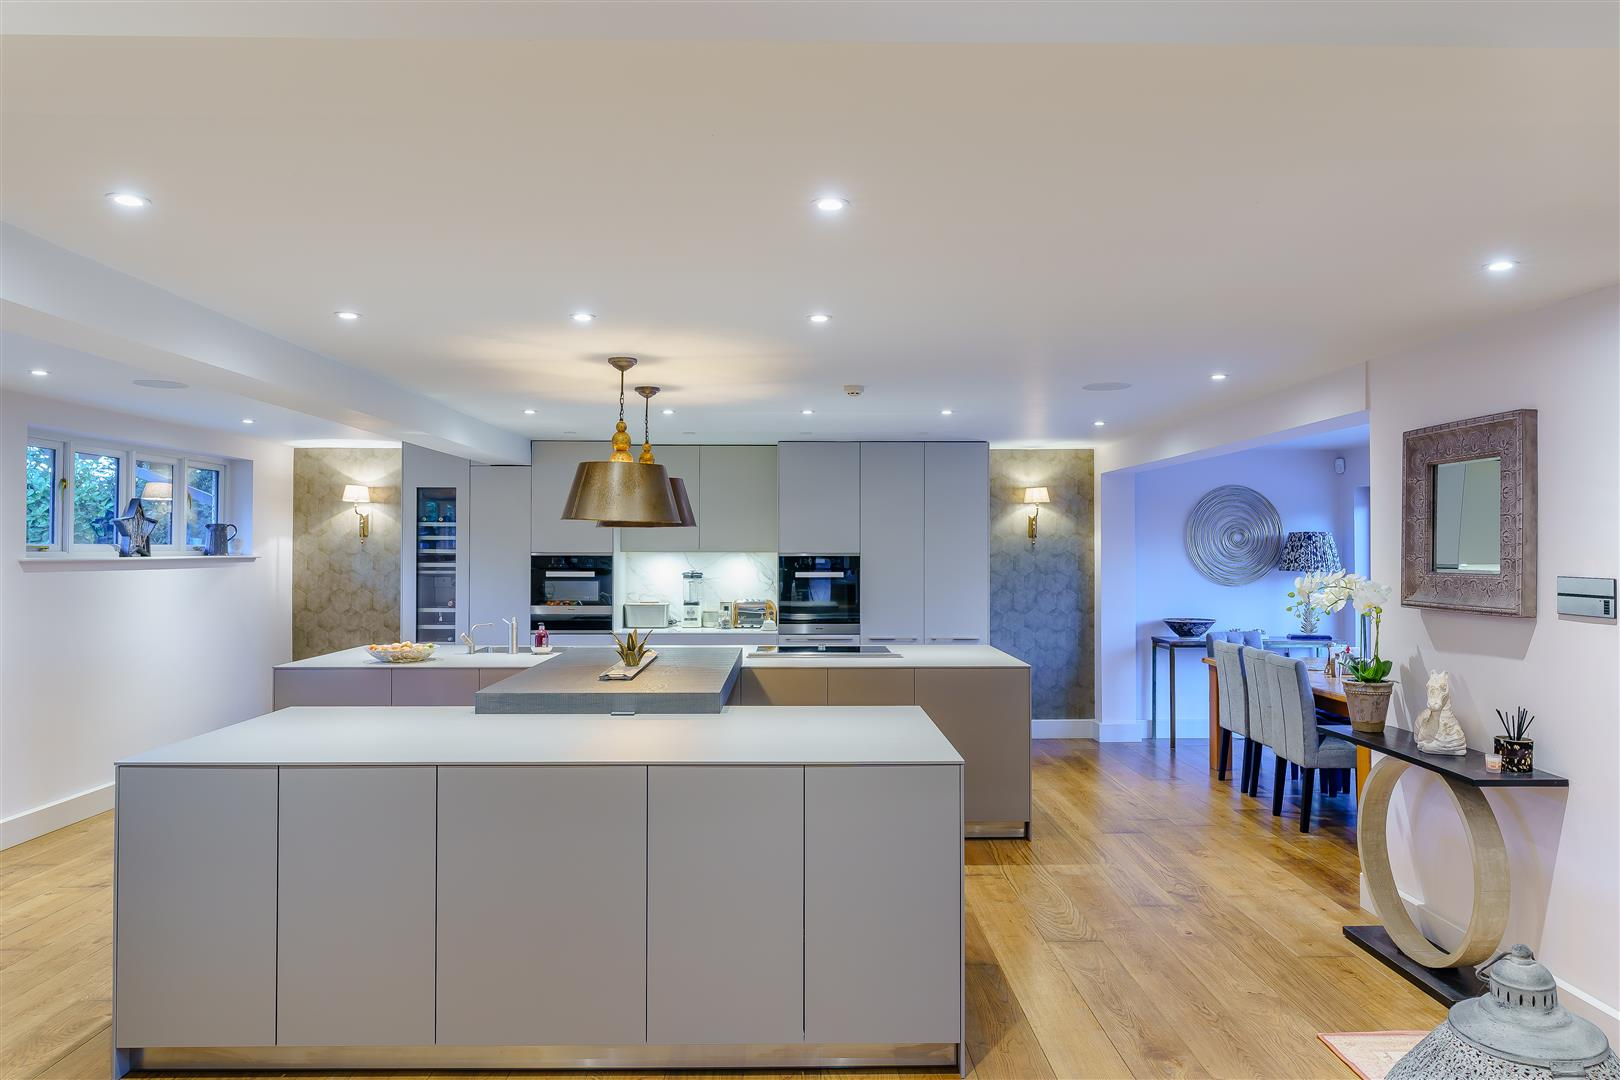 Rowstock Manor - Gallery Image 10 - Kitchen